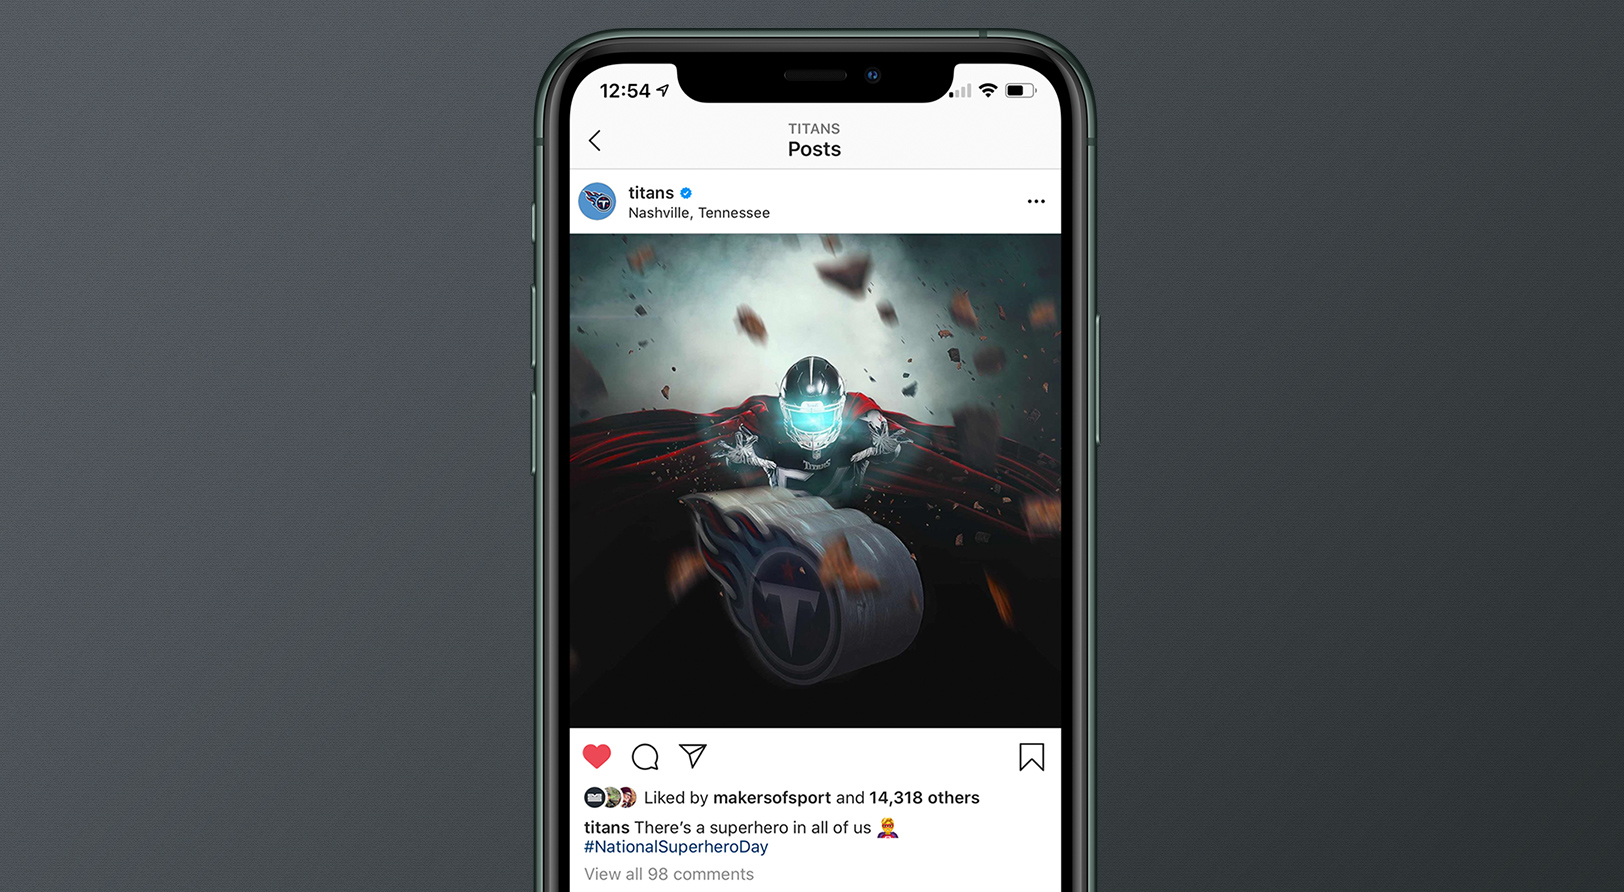 Sports Design / SMsports ›› Visual Design Composite for National Superhero Day for the Tennessee Titans Instagram Screenshot